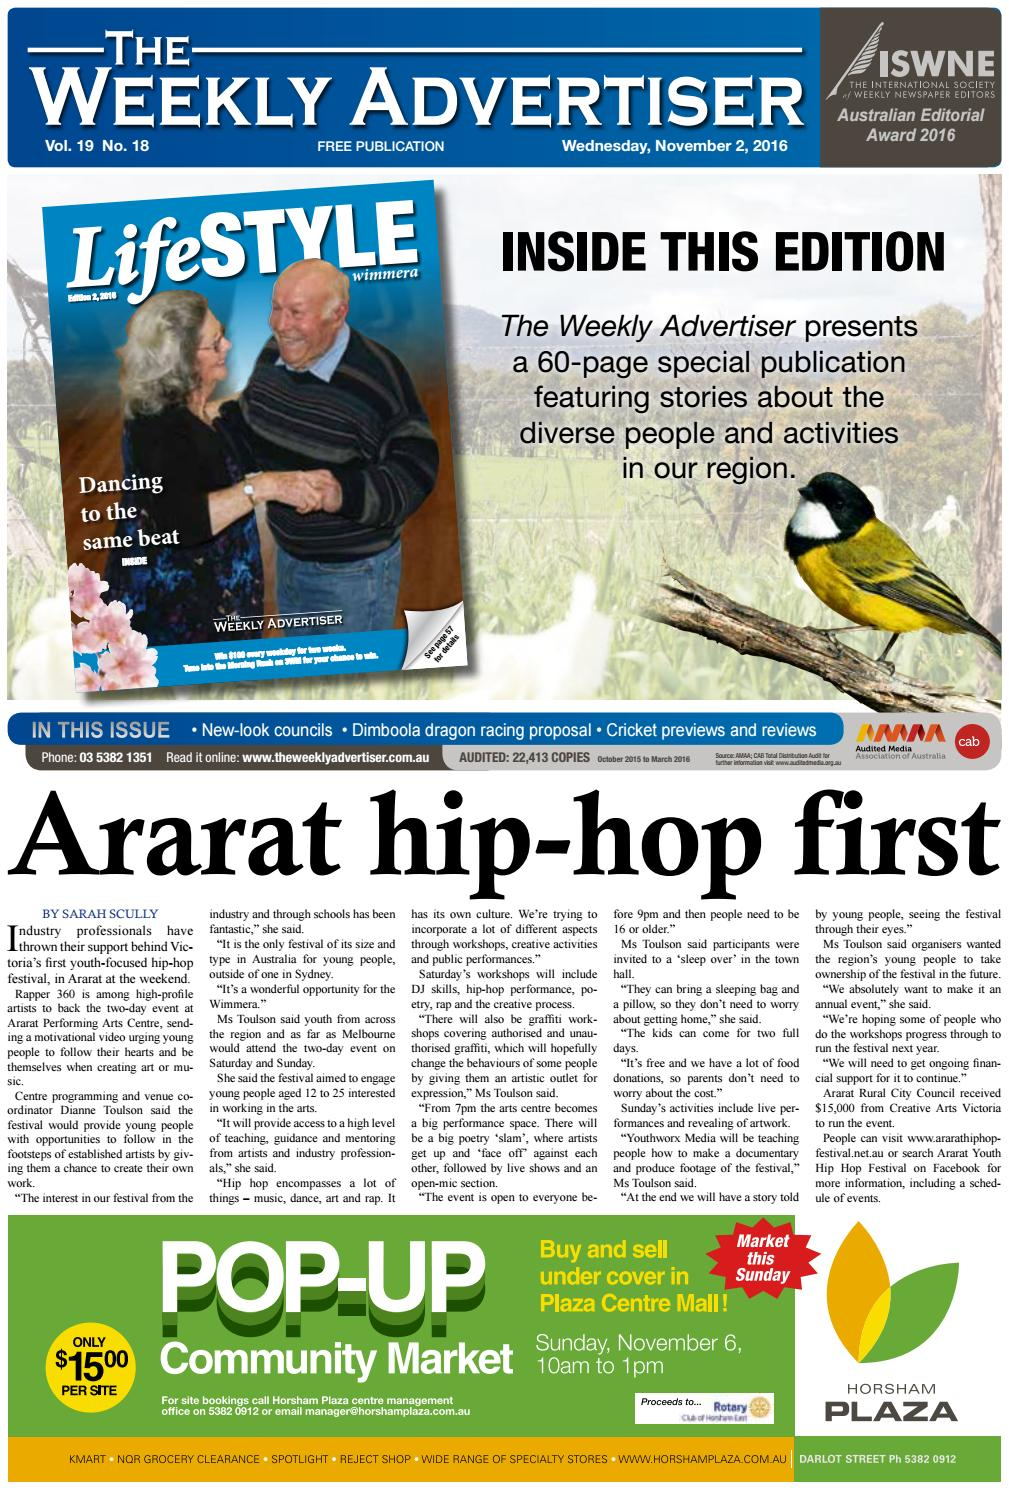 bee7d9e76c1 The Weekly Advertiser - Wednesday